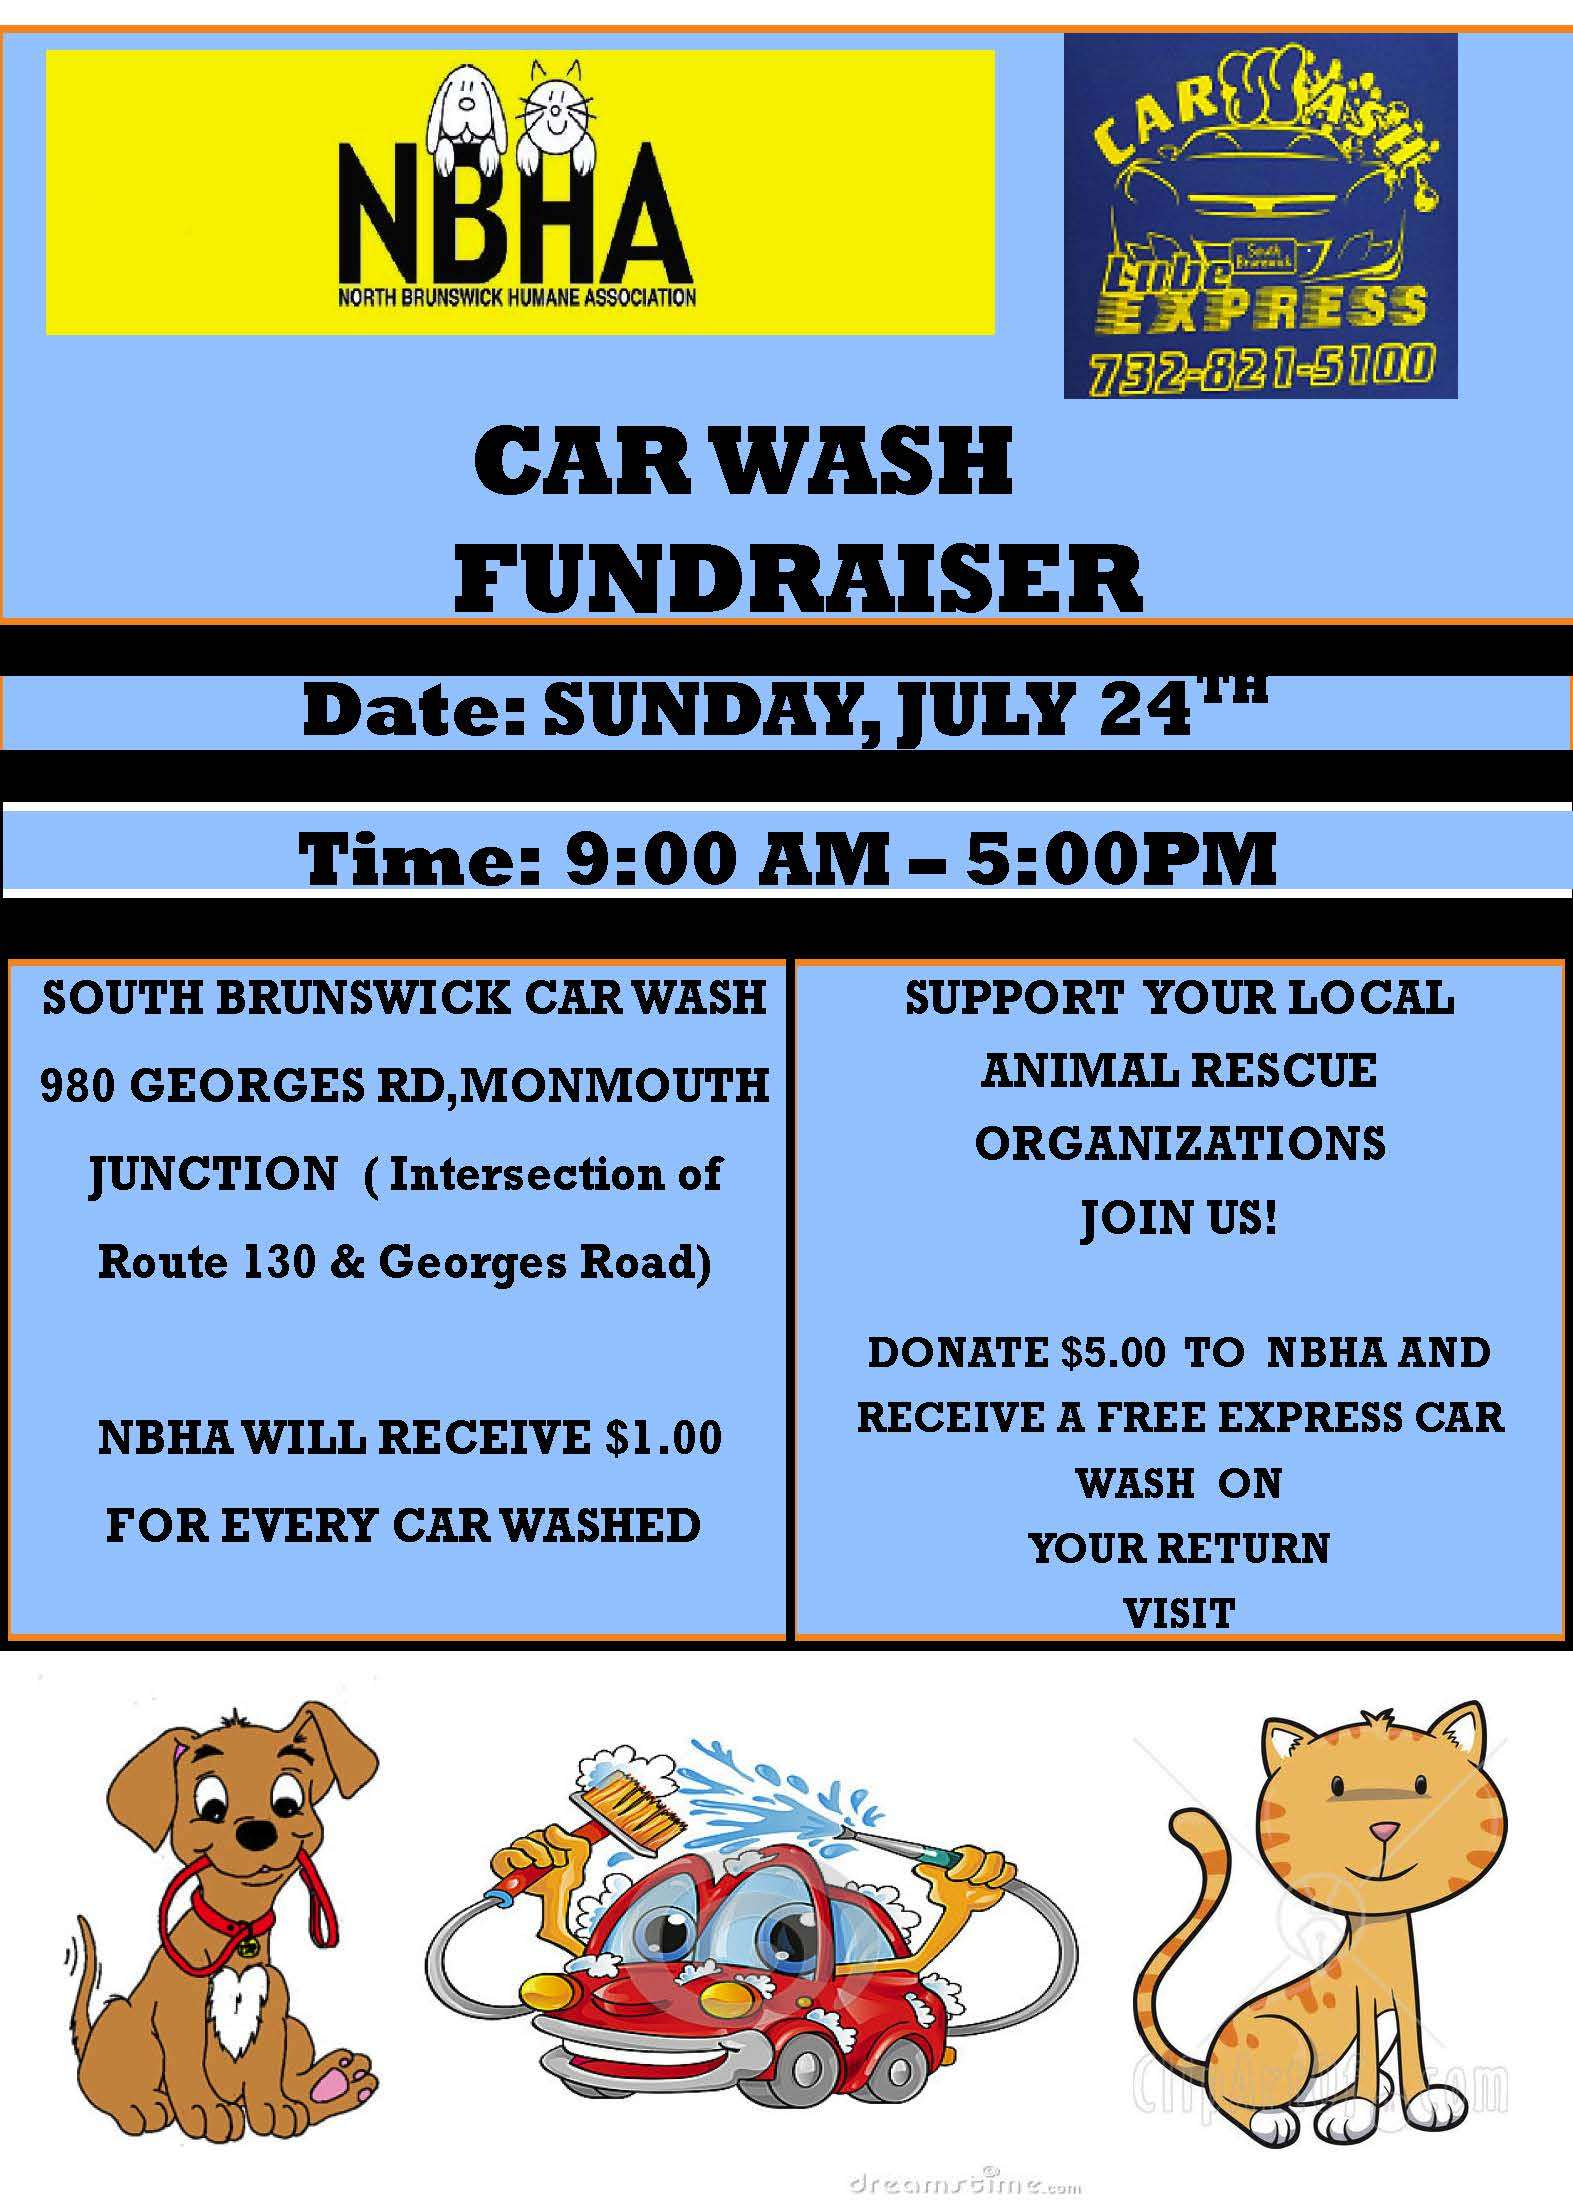 Car Wash Fundraiser Sunday July 24th North Brunswick Humane